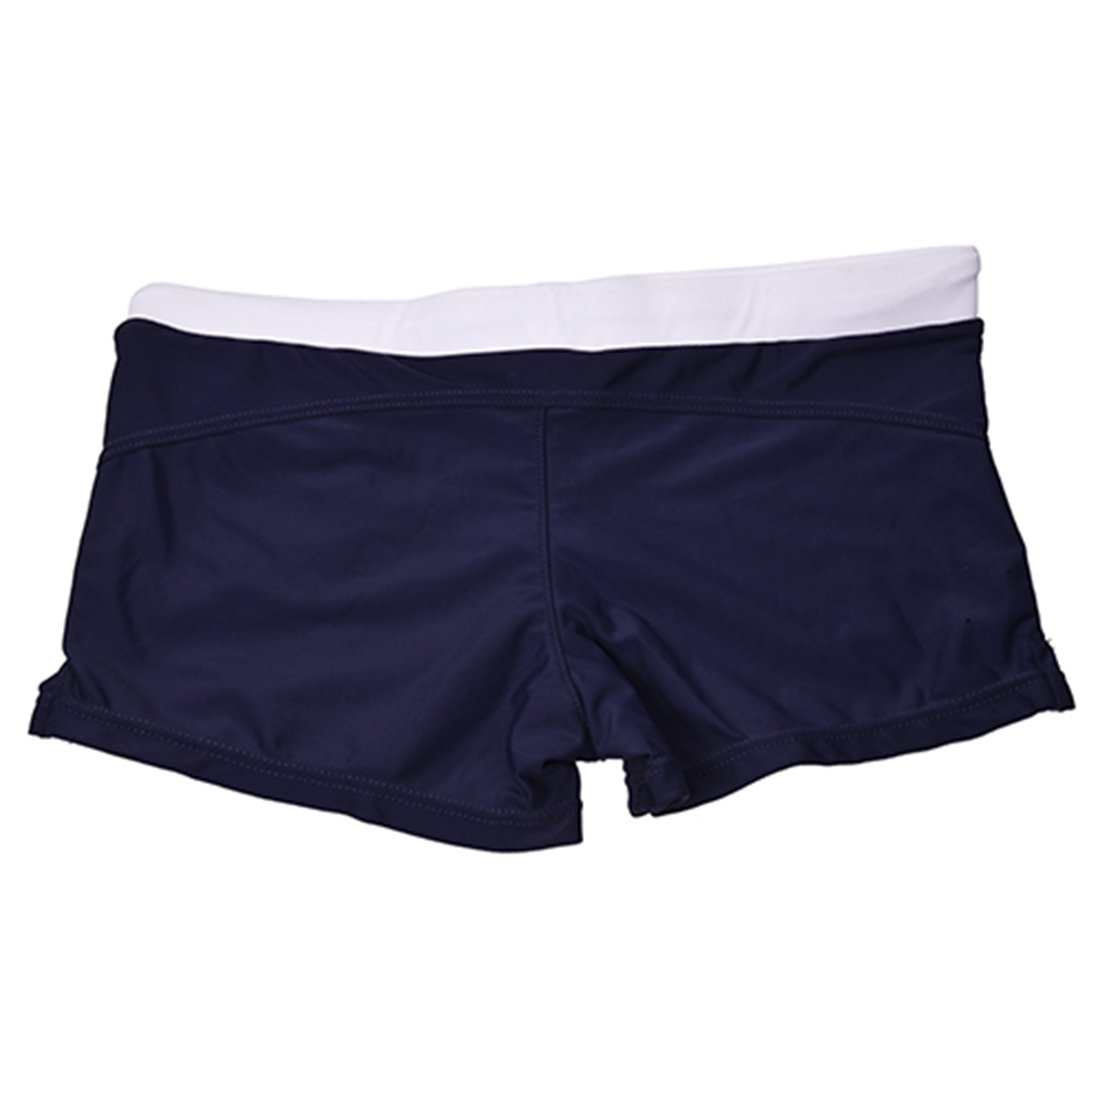 d54322ba5bcb6 Amazon.com : AQUX Hot Sexy Men Swimwear Men's Swimsuits Surf Board Beach  Wear Man Swimming Trunks Boxer Shorts Swim Suits, Navy blue L : Sports &  Outdoors